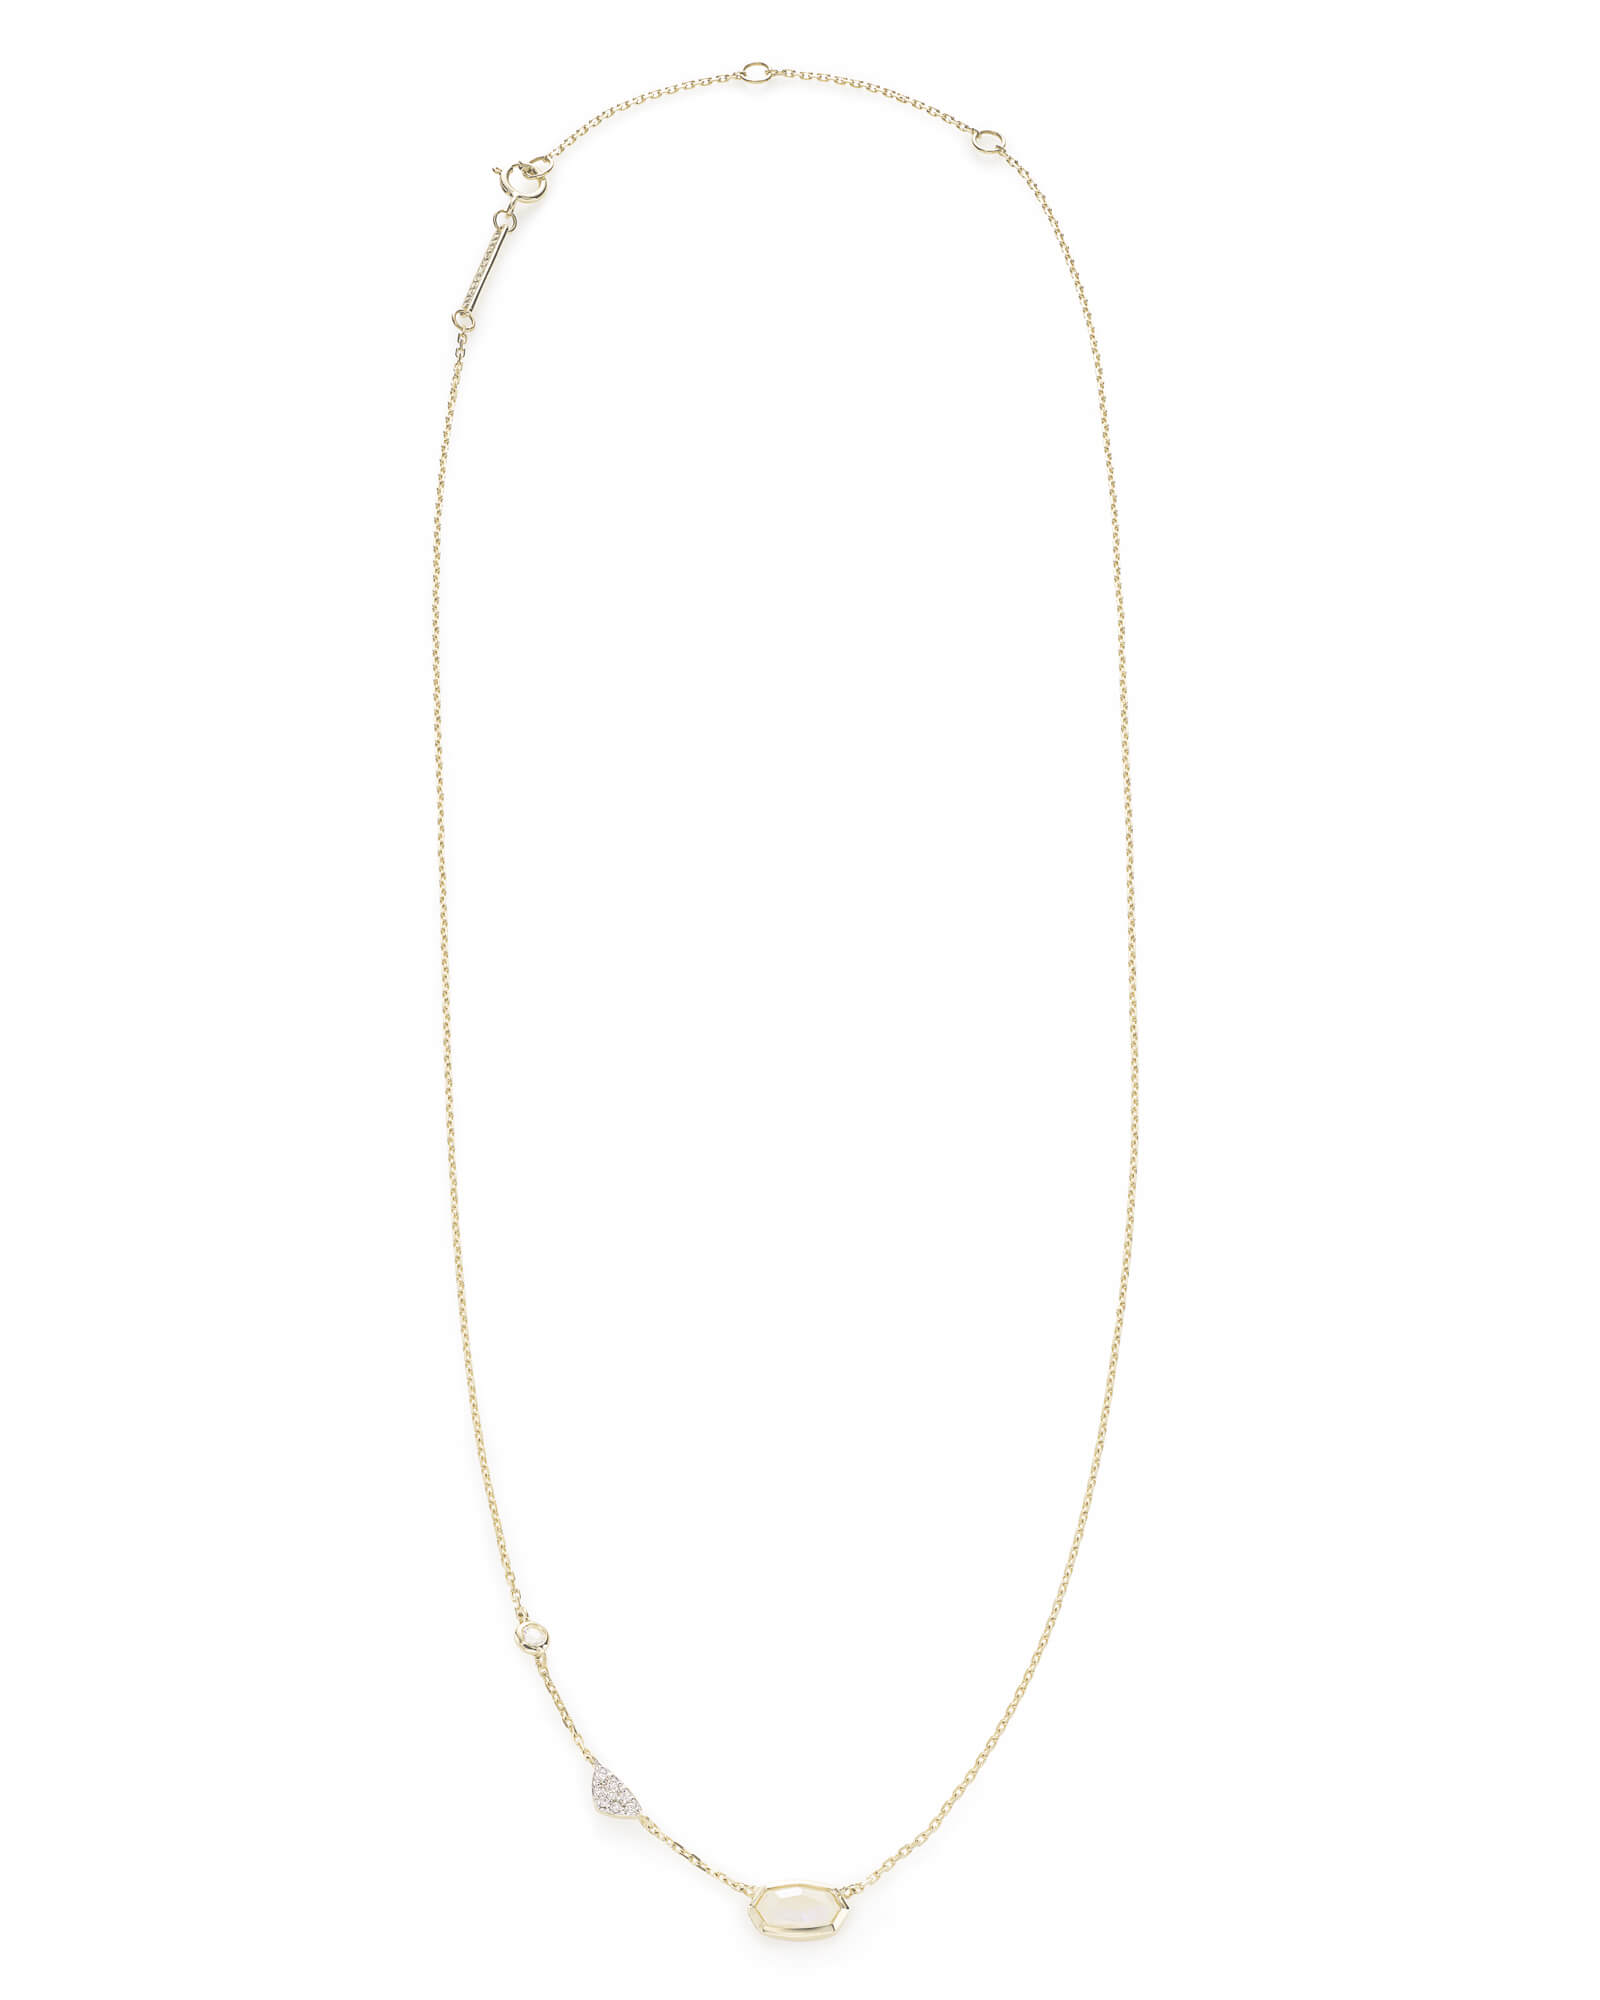 Aryn Pendant Necklace in Rainbow Moonstone and 14k Yellow Gold